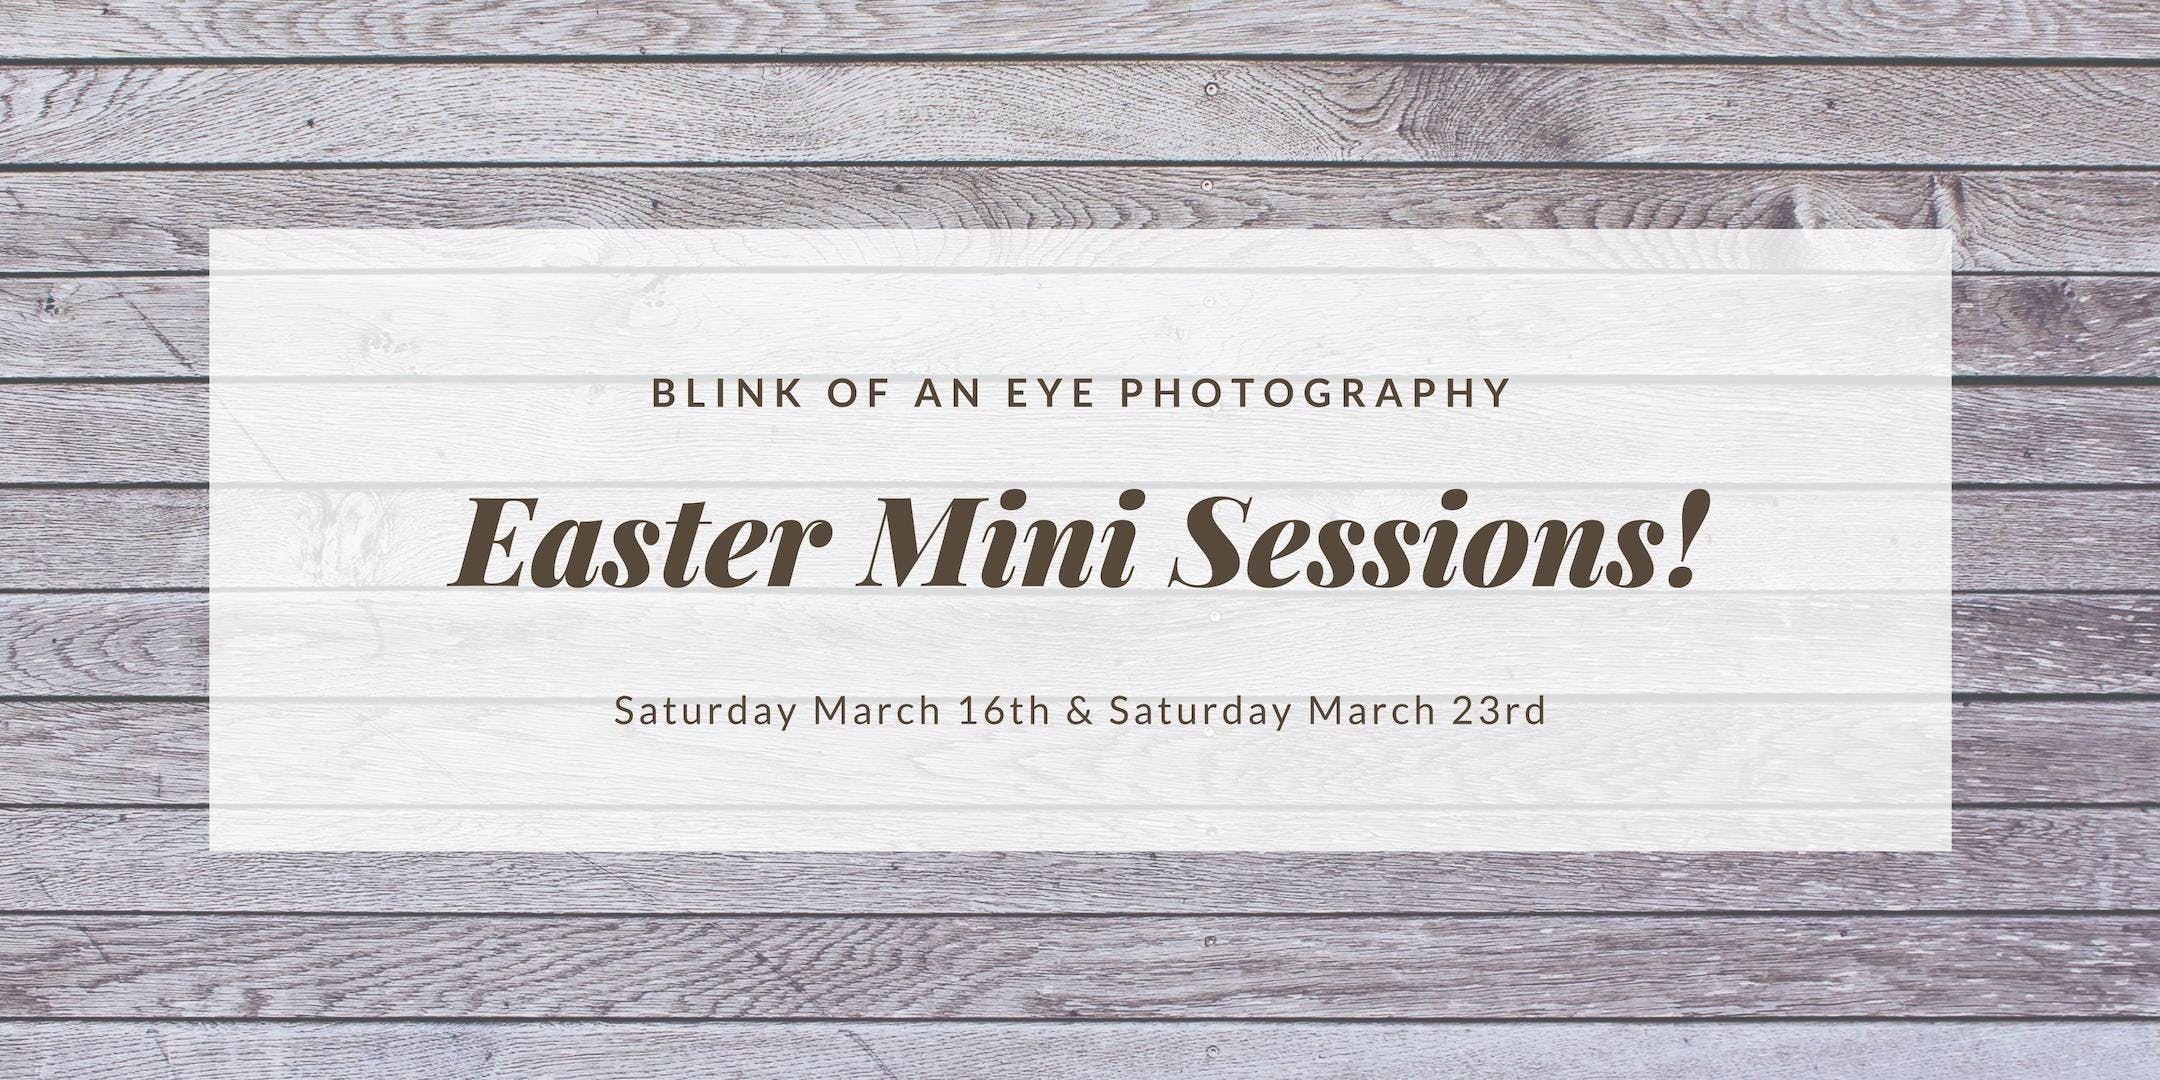 Blink of an Eye Photography - Easter Mini Sessions